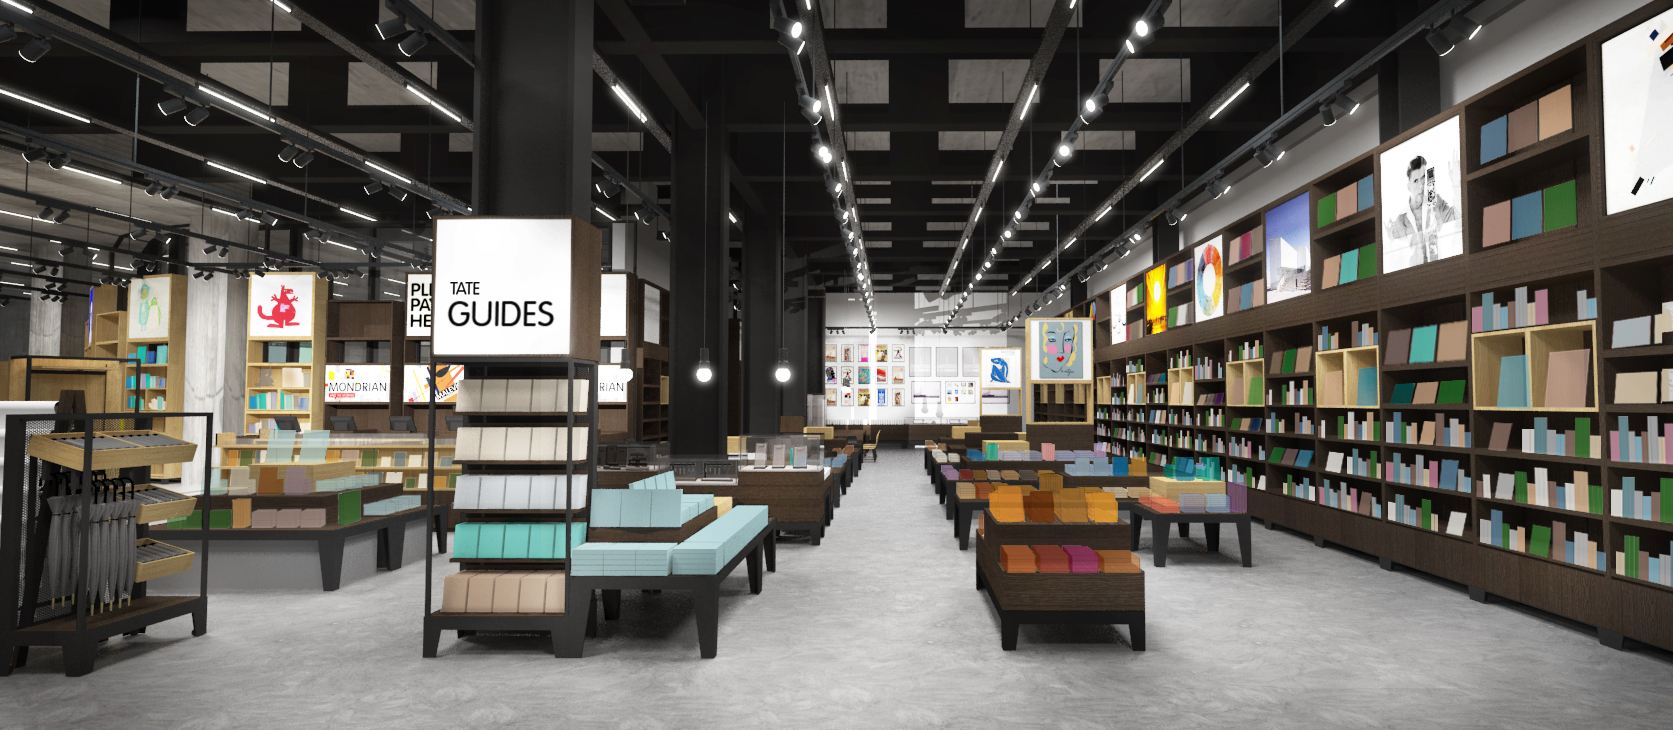 new tate modern retail store will adapt and evolve  design week - tate south entranceperspective ""